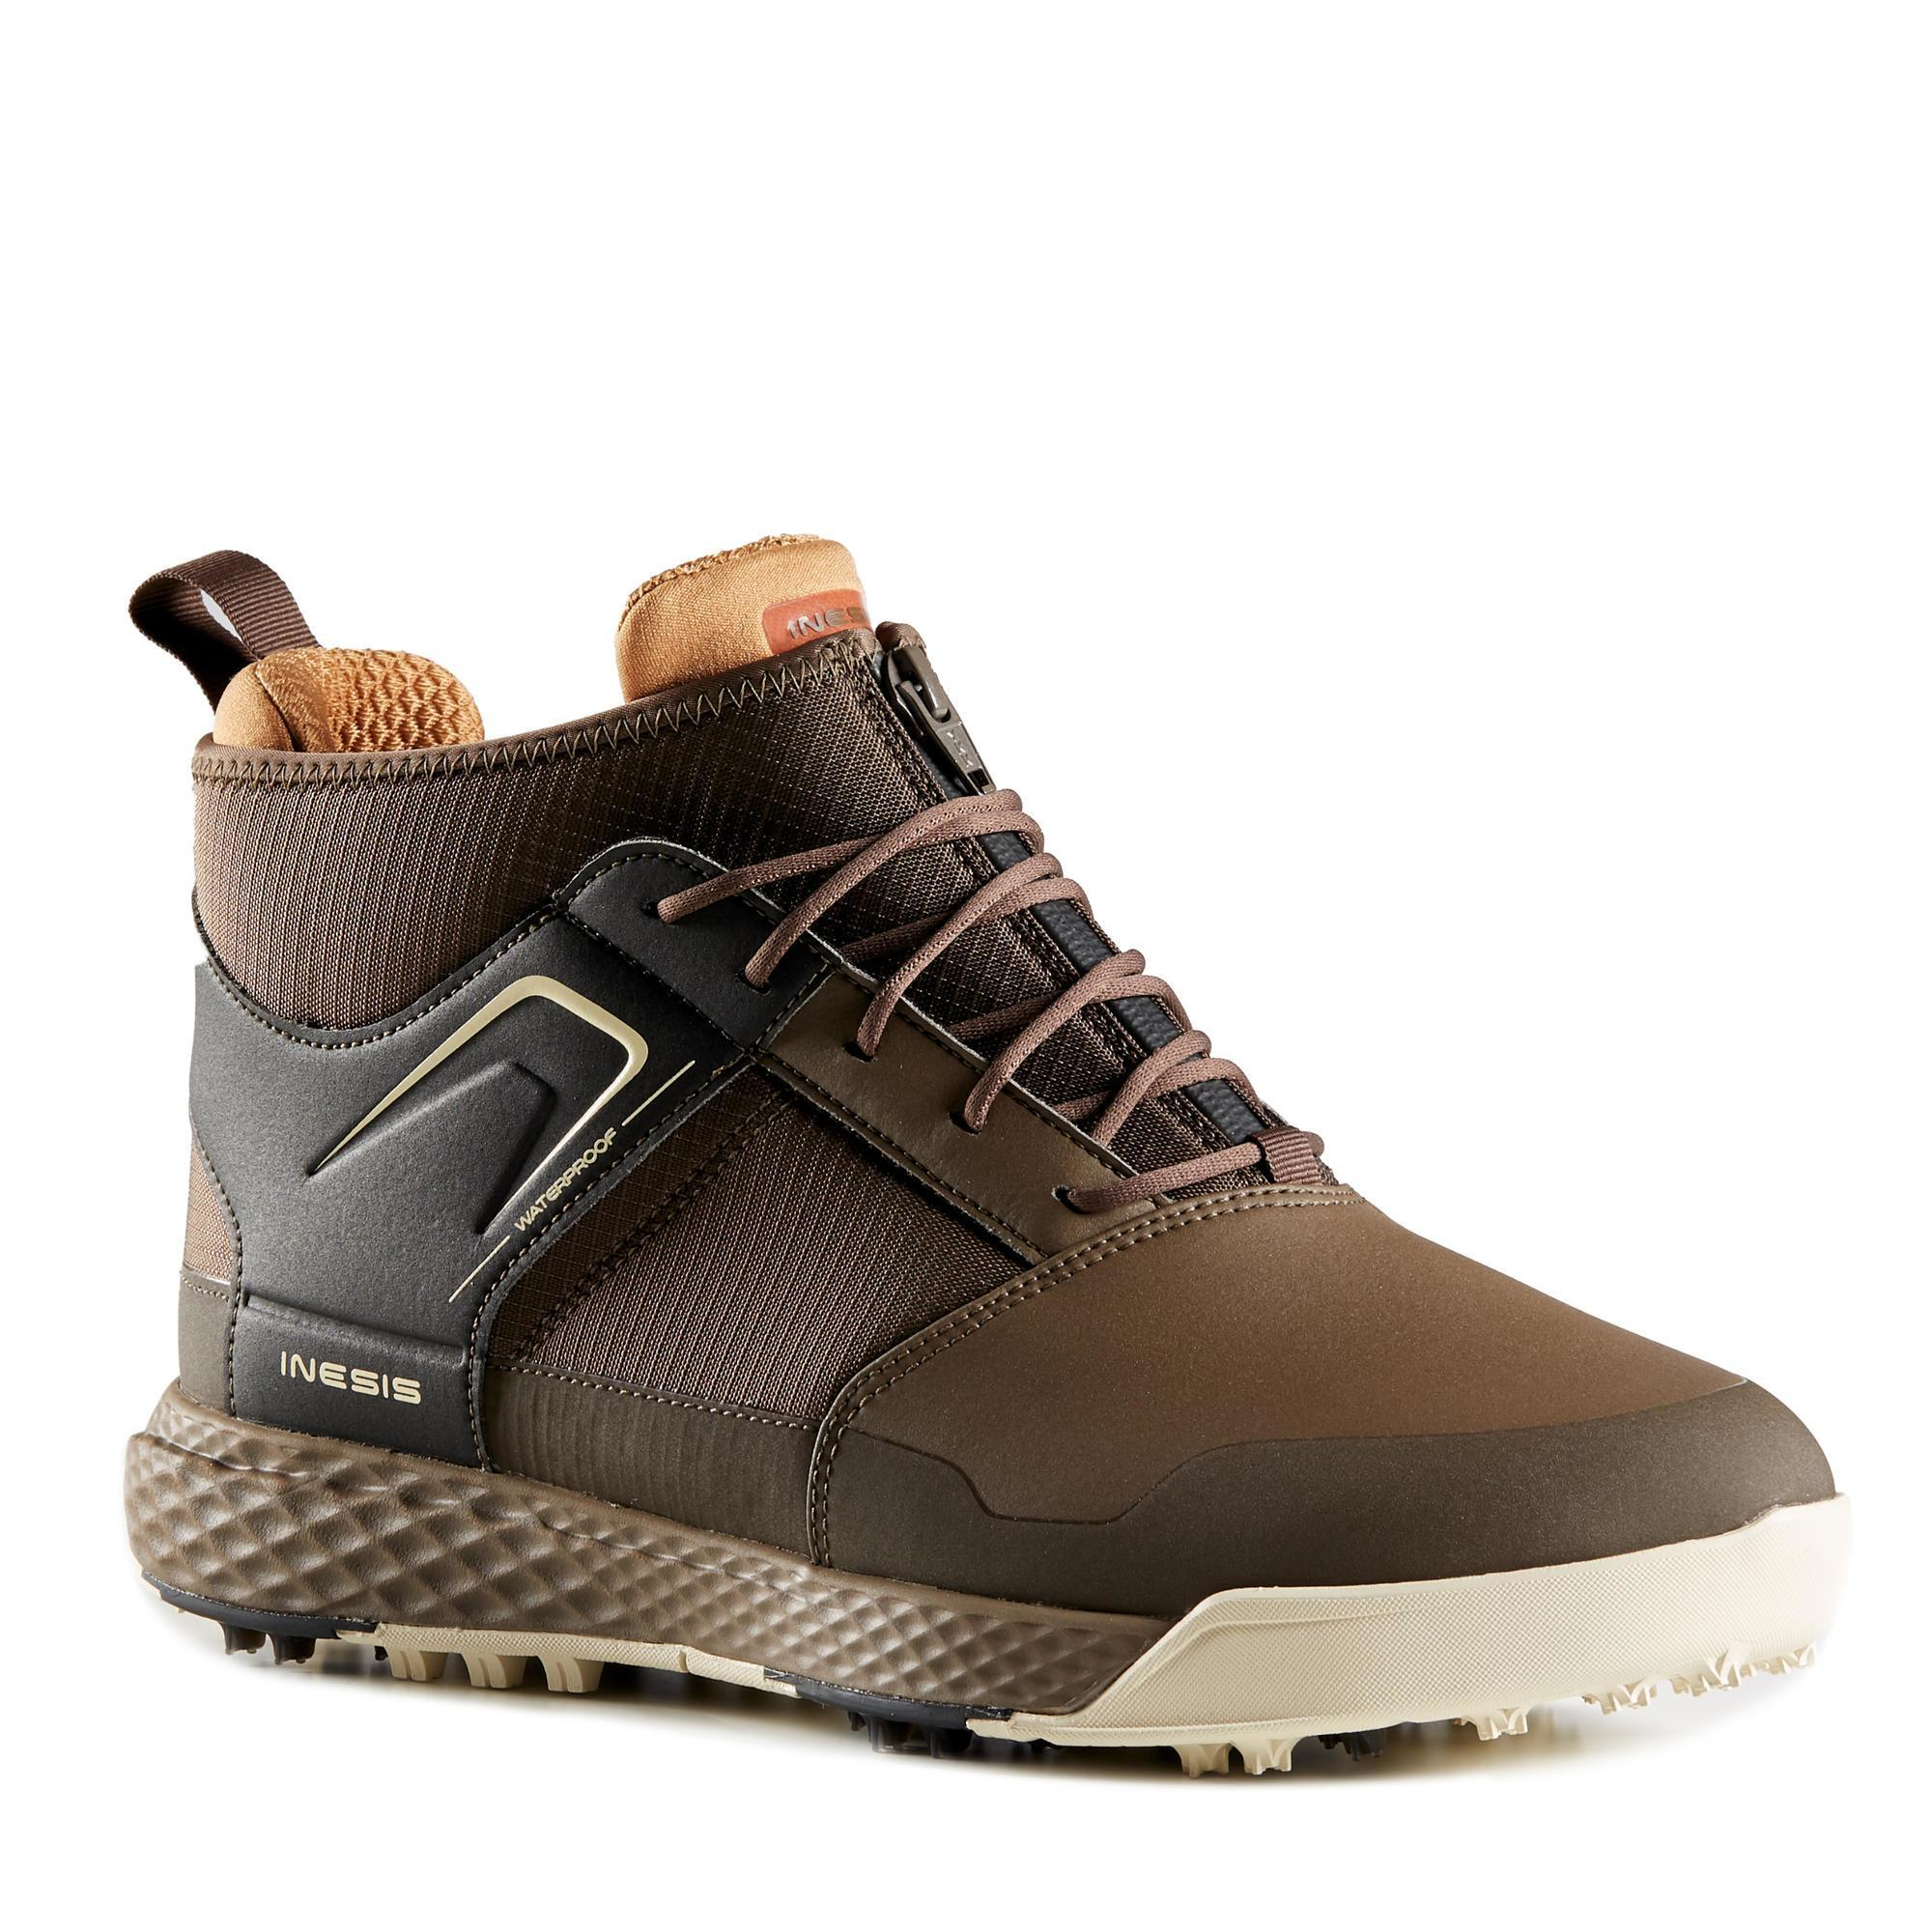 Design Maison Chaussure Homme Decathlon De Securite